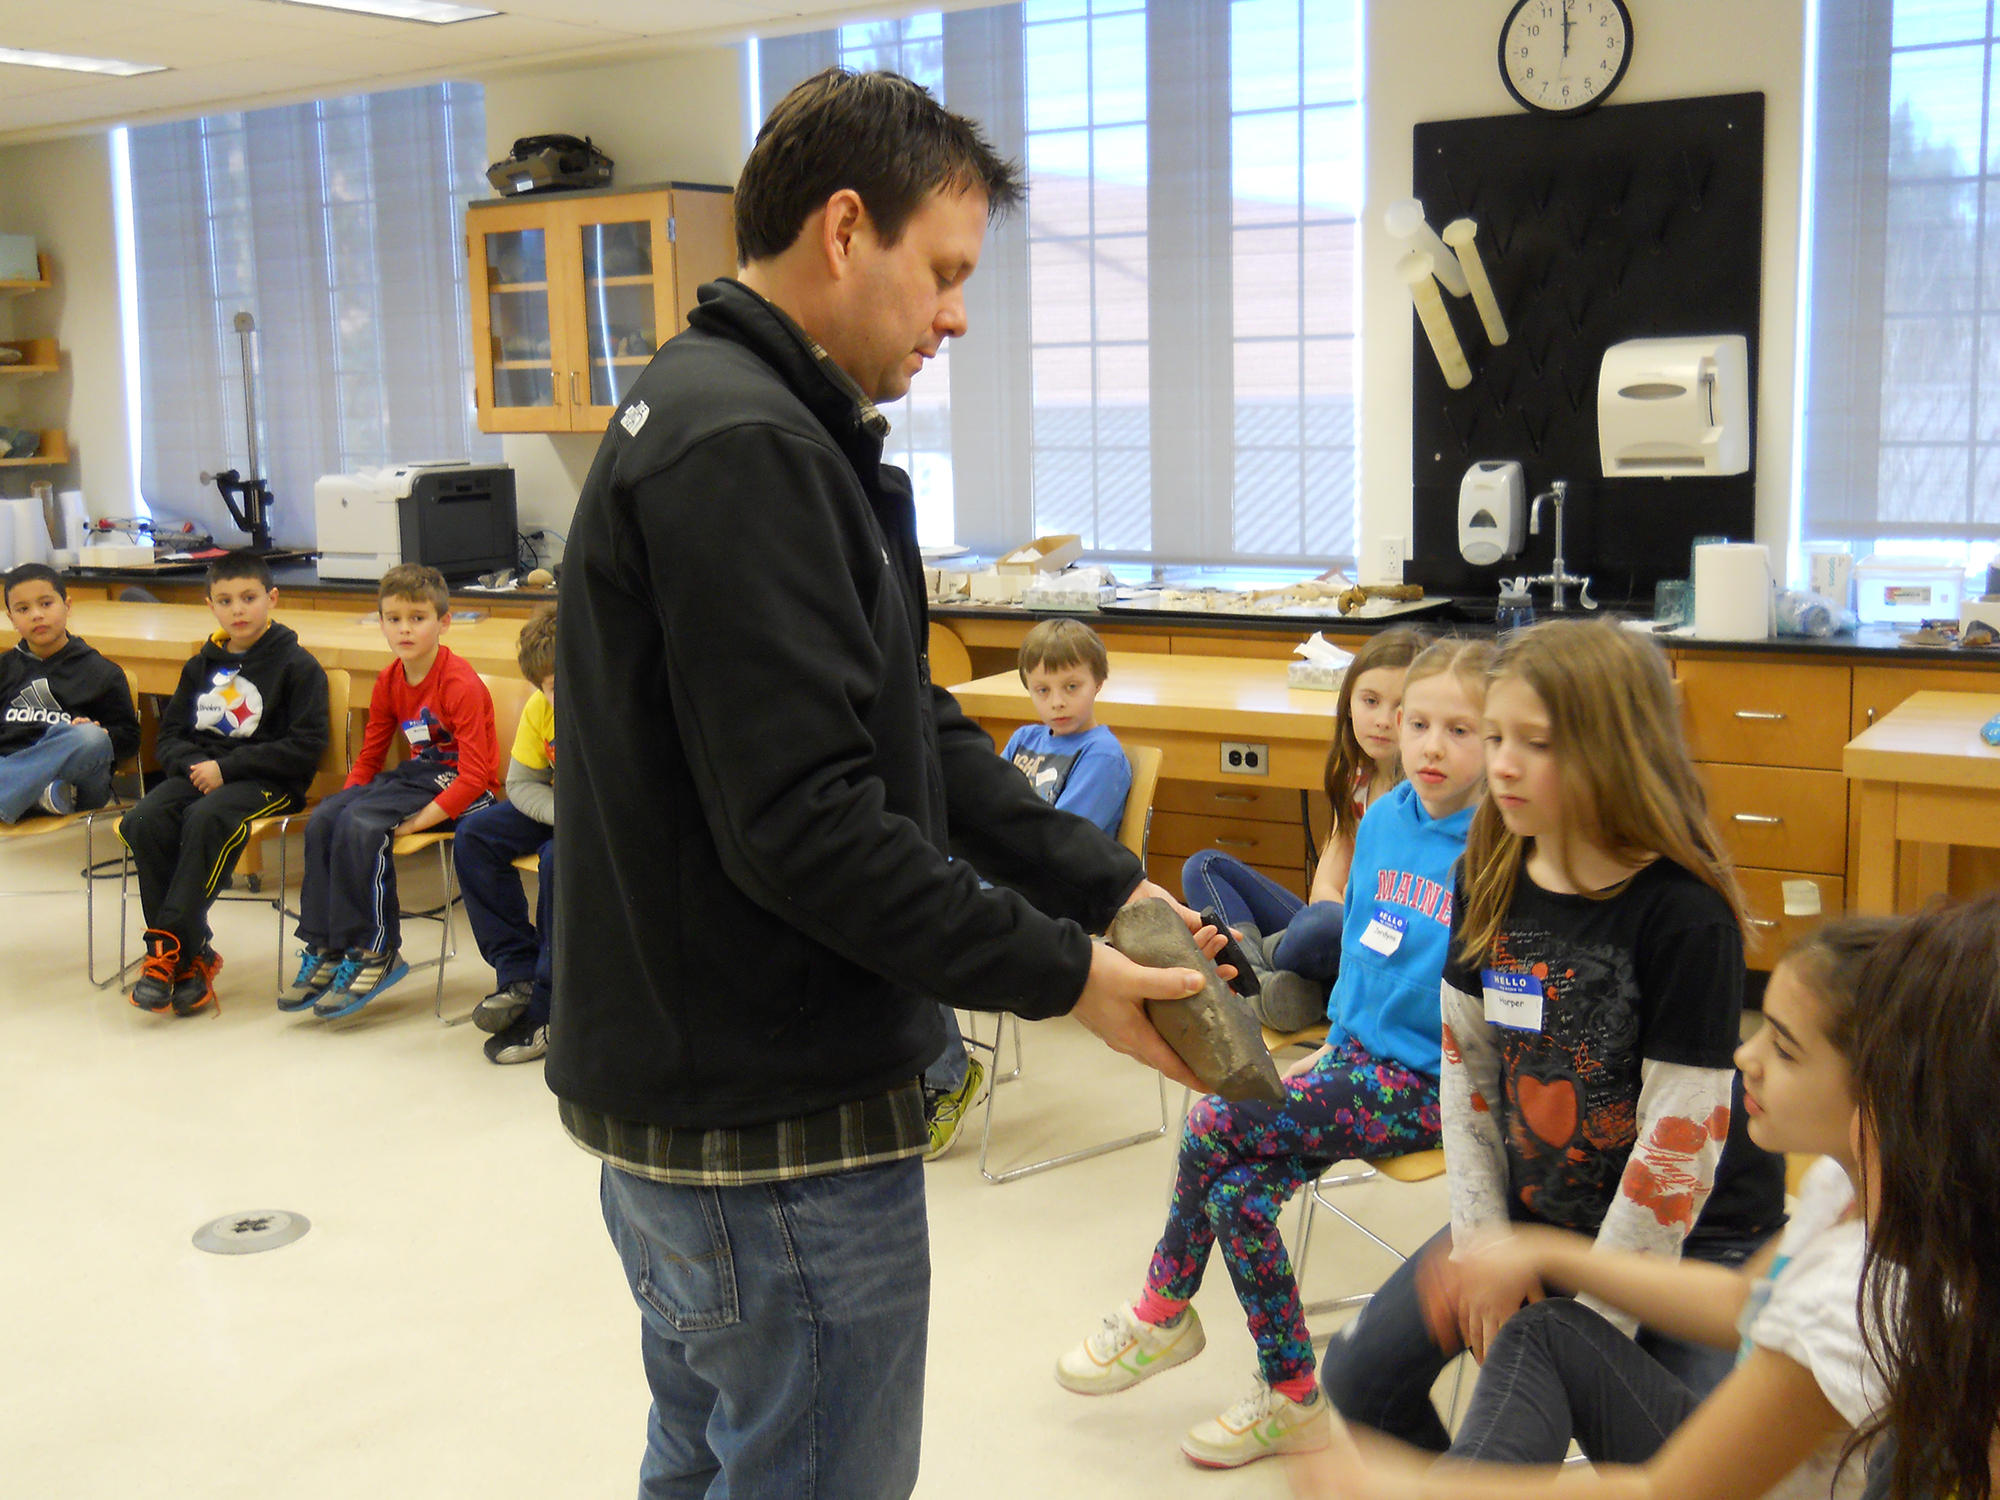 Anthropology professor Nathan Goodale shows the children igneous (volcanic) rocks called obsidian and basal.